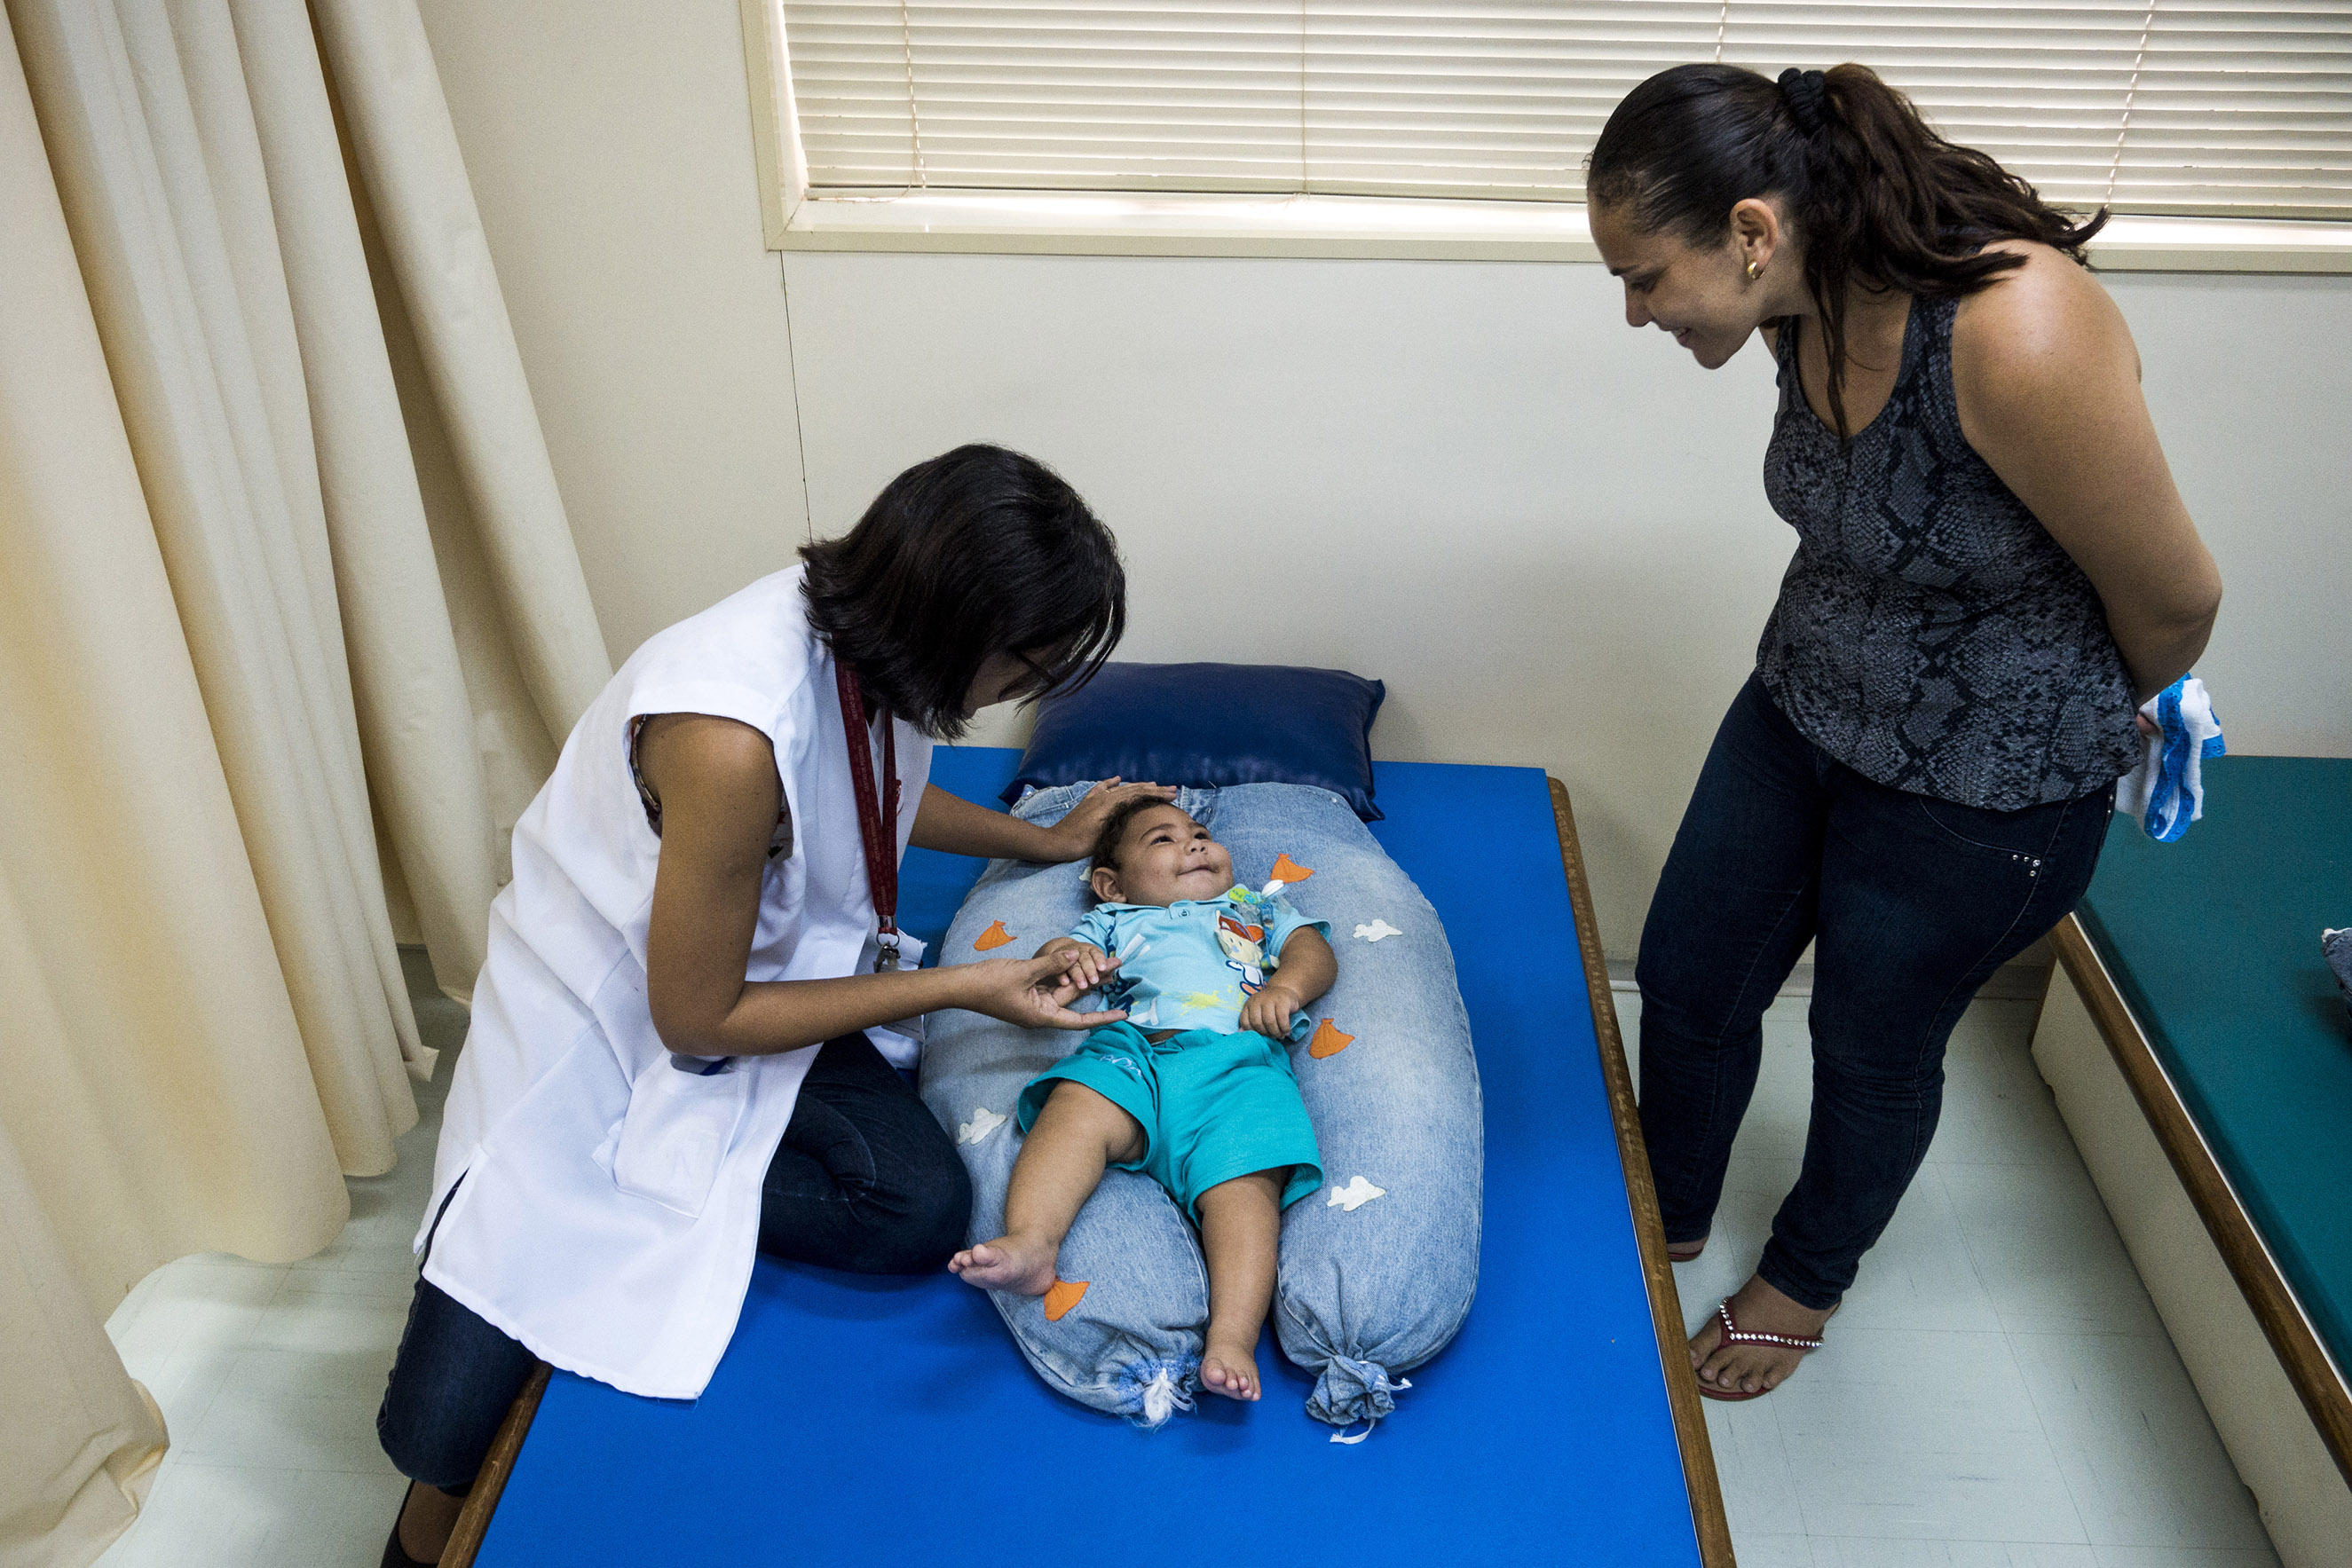 Dr. Cynthia de Melo Silva Ximenes, a physical therapist, works with Adriana Cordeiro da Silva, 29, and her 7-month-year-old son Jose Bernardo at the Associacao de Assistencia a Crianca Deficiente rehabilitation center in Recife, Brazil, Feb. 1, 2016. She drove five hours from Custódia for care.